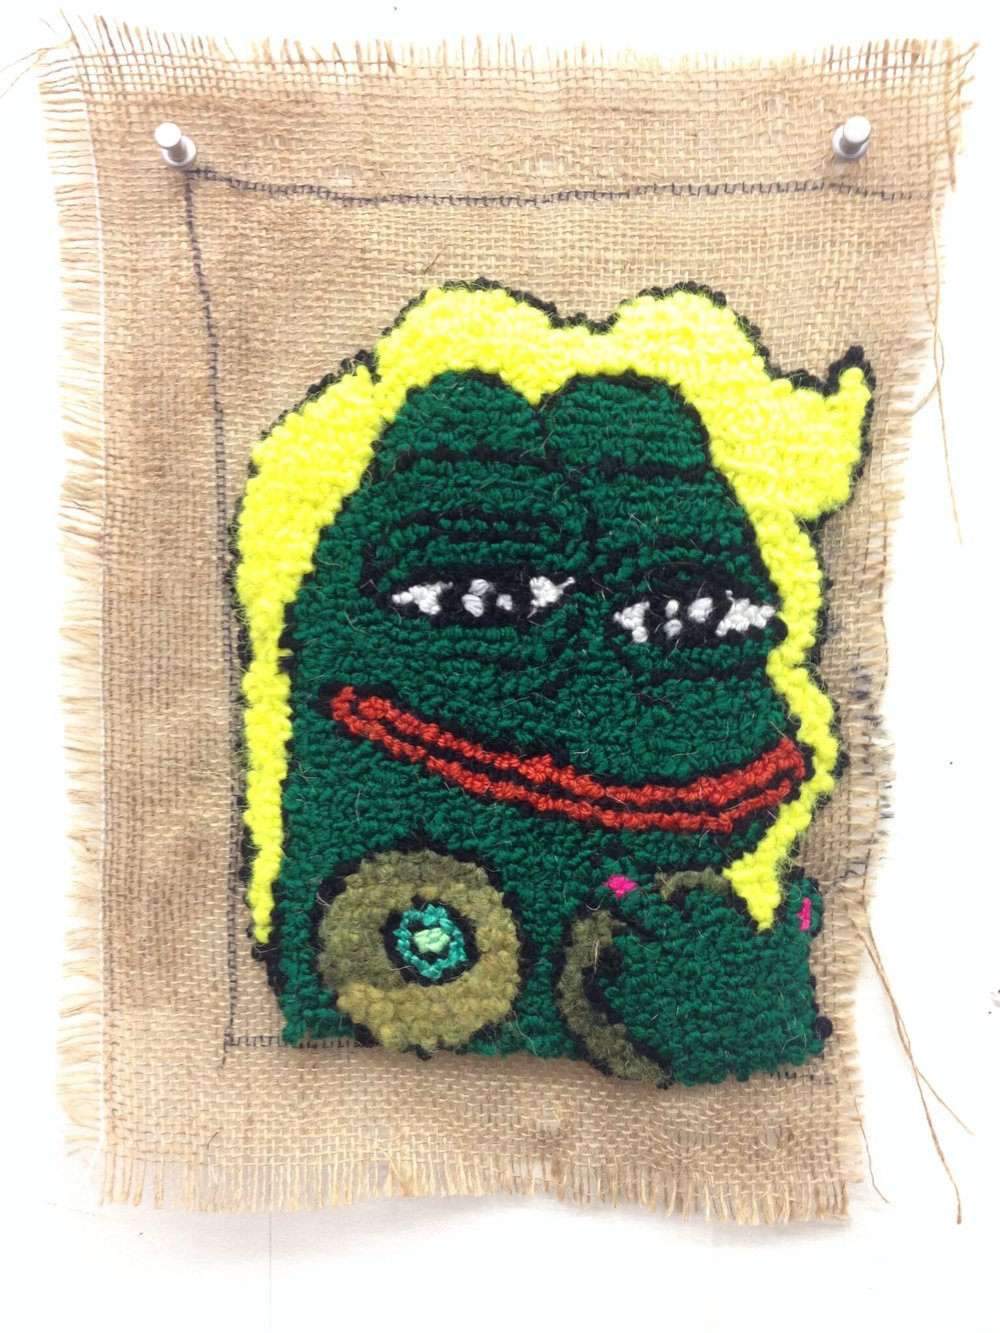 babe pepe  wool, acrylic, burlap  dimensions not recorded  2016